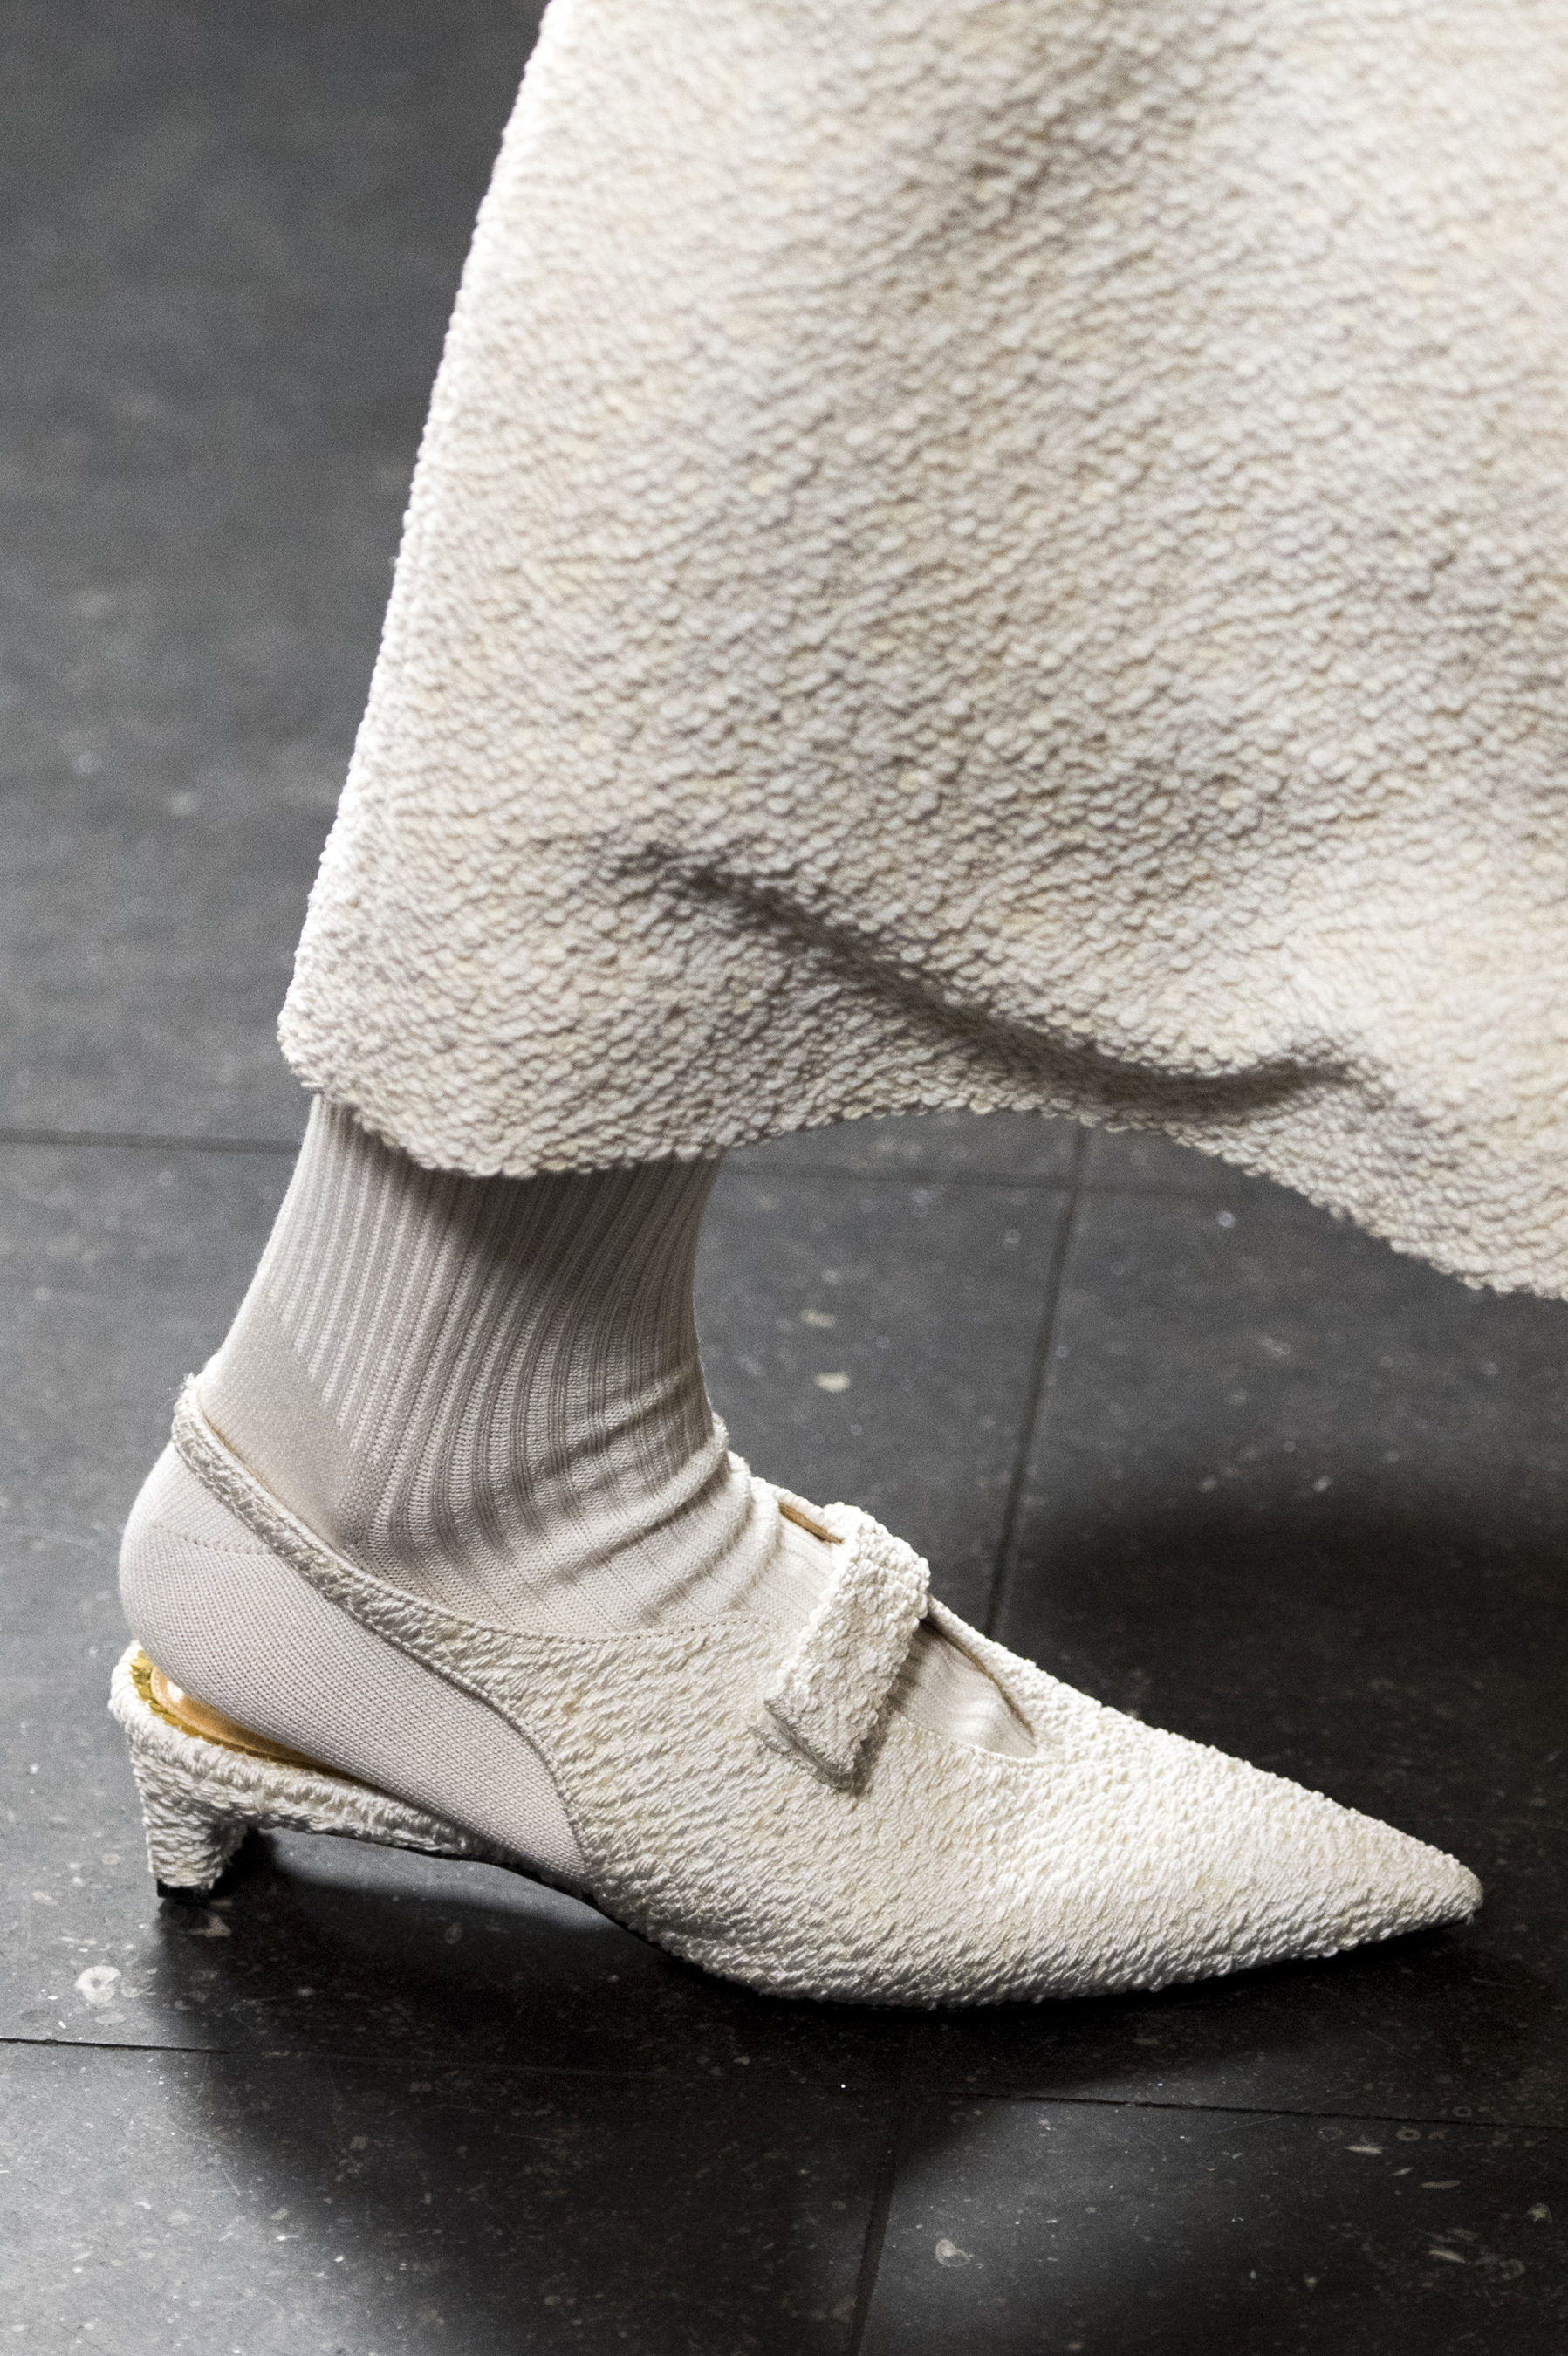 Emilia Wickstead Fall 2019 Fashion Show Details